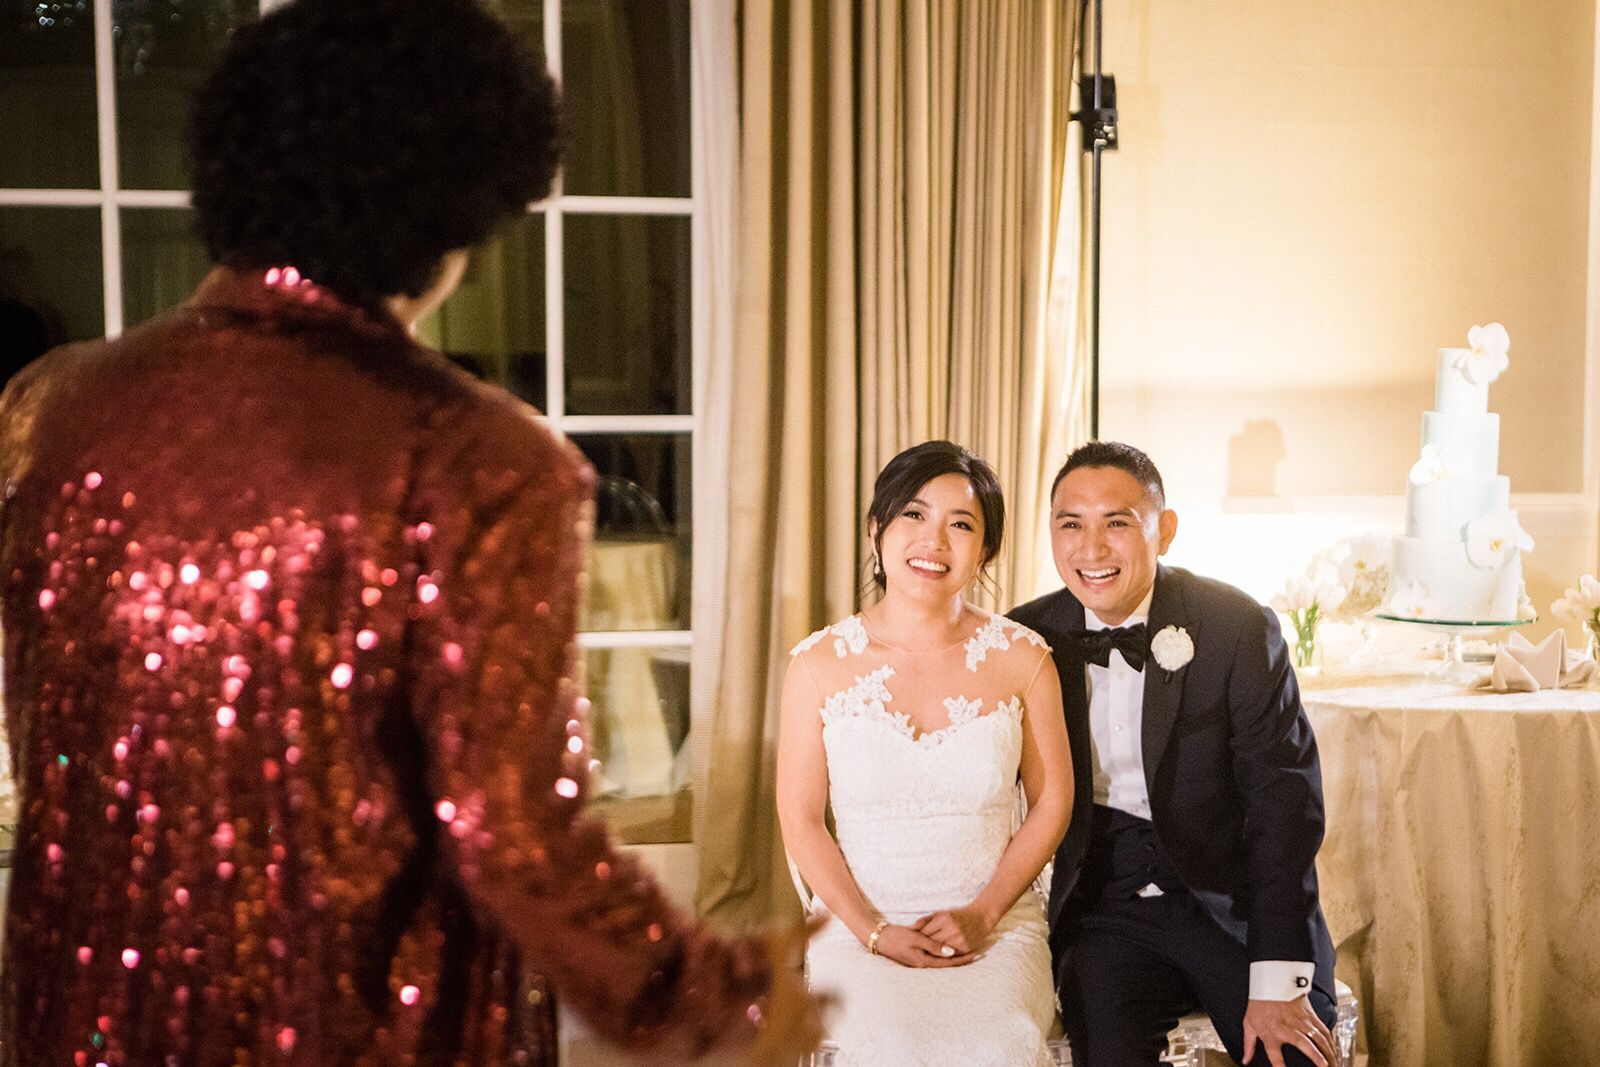 How Much For Bruno To Sing At My Wedding Wedding Reception Entertainment Celebrity Look Alike Wedding